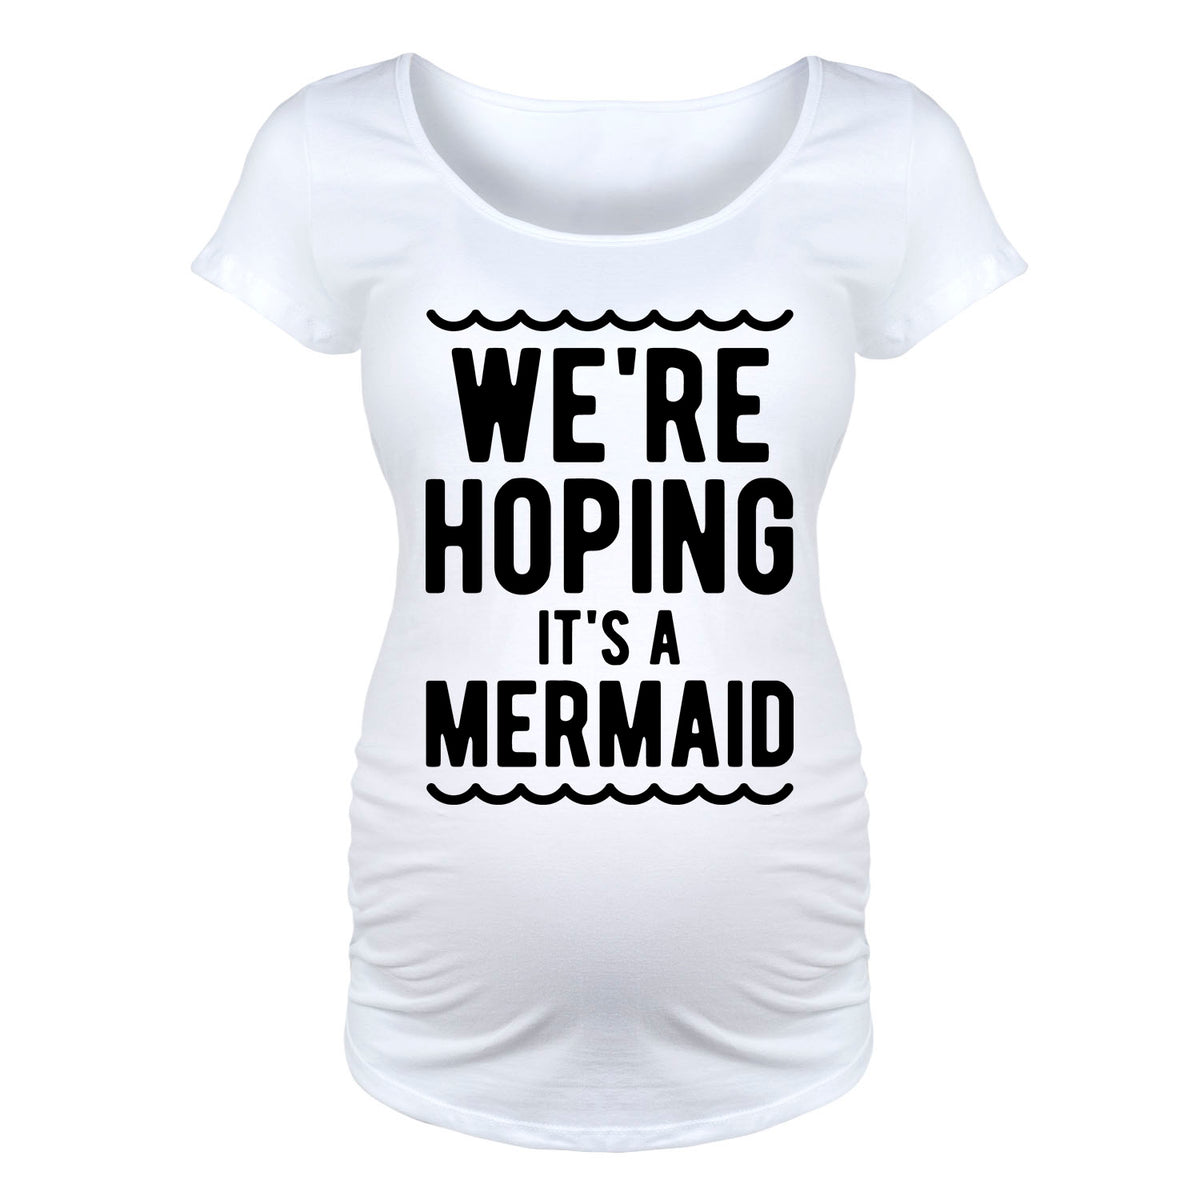 We're Hoping It's A Mermaid - Maternity Short Sleeve T-Shirt